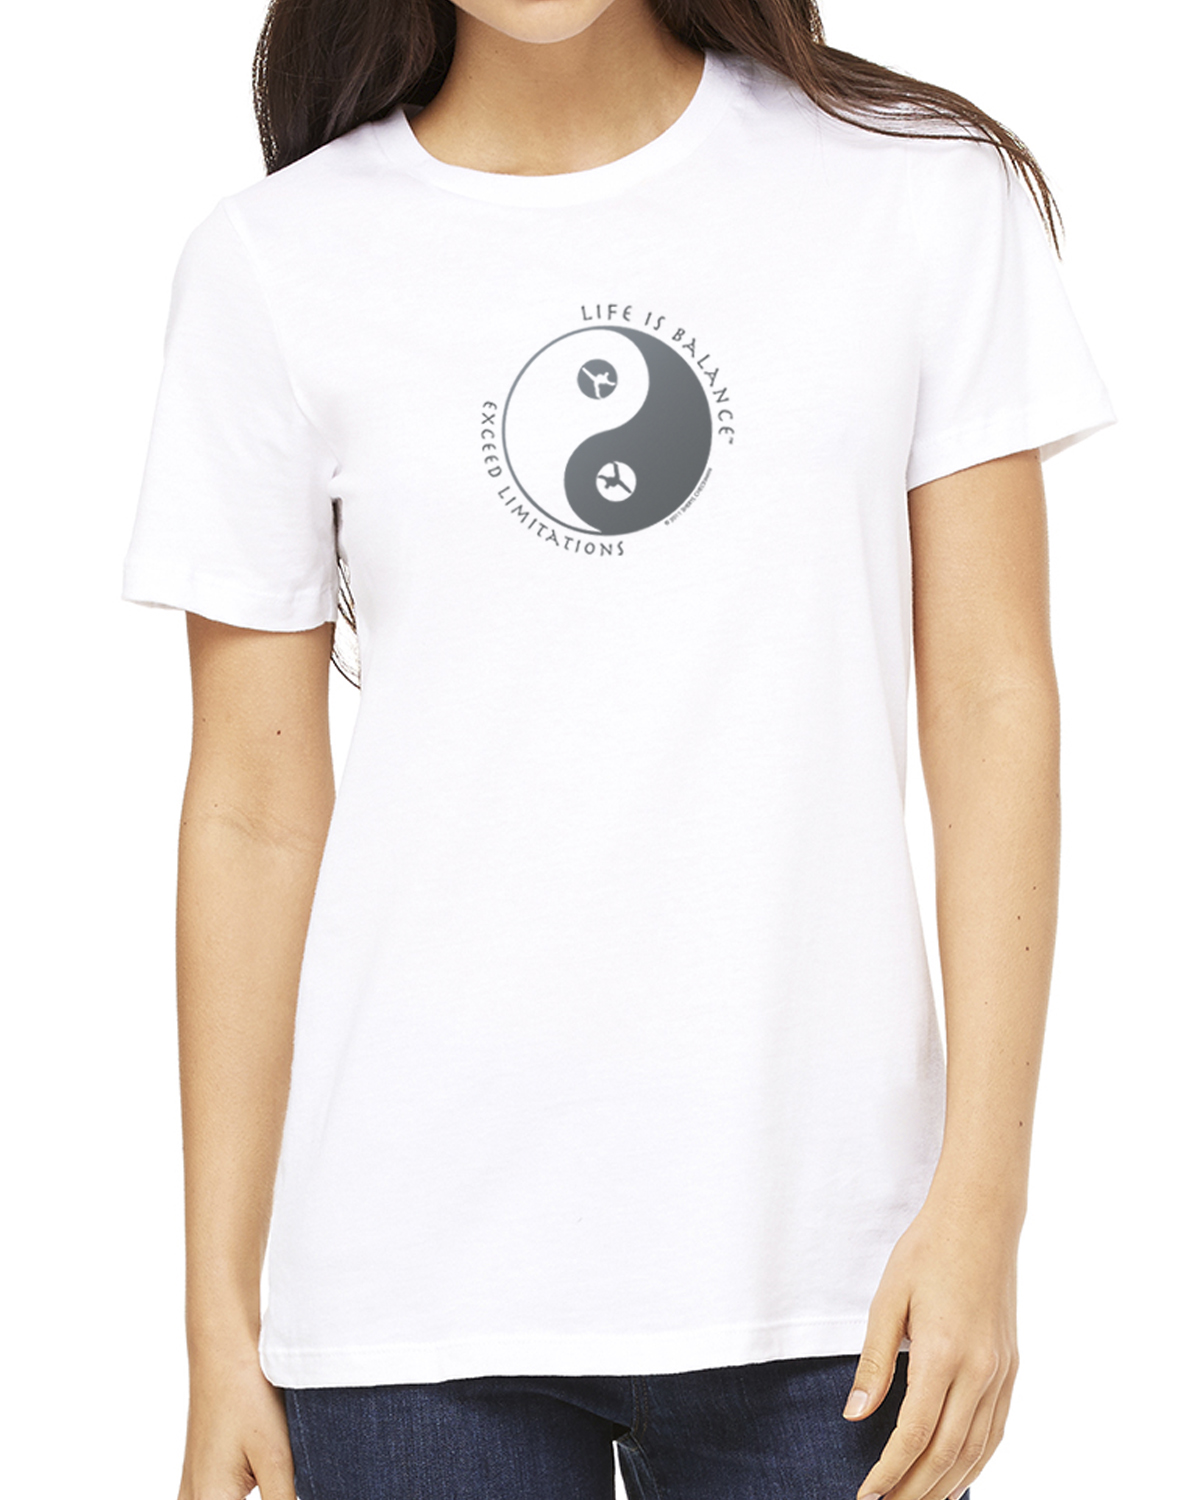 Women's short sleeve martial arts t-shirt (white)